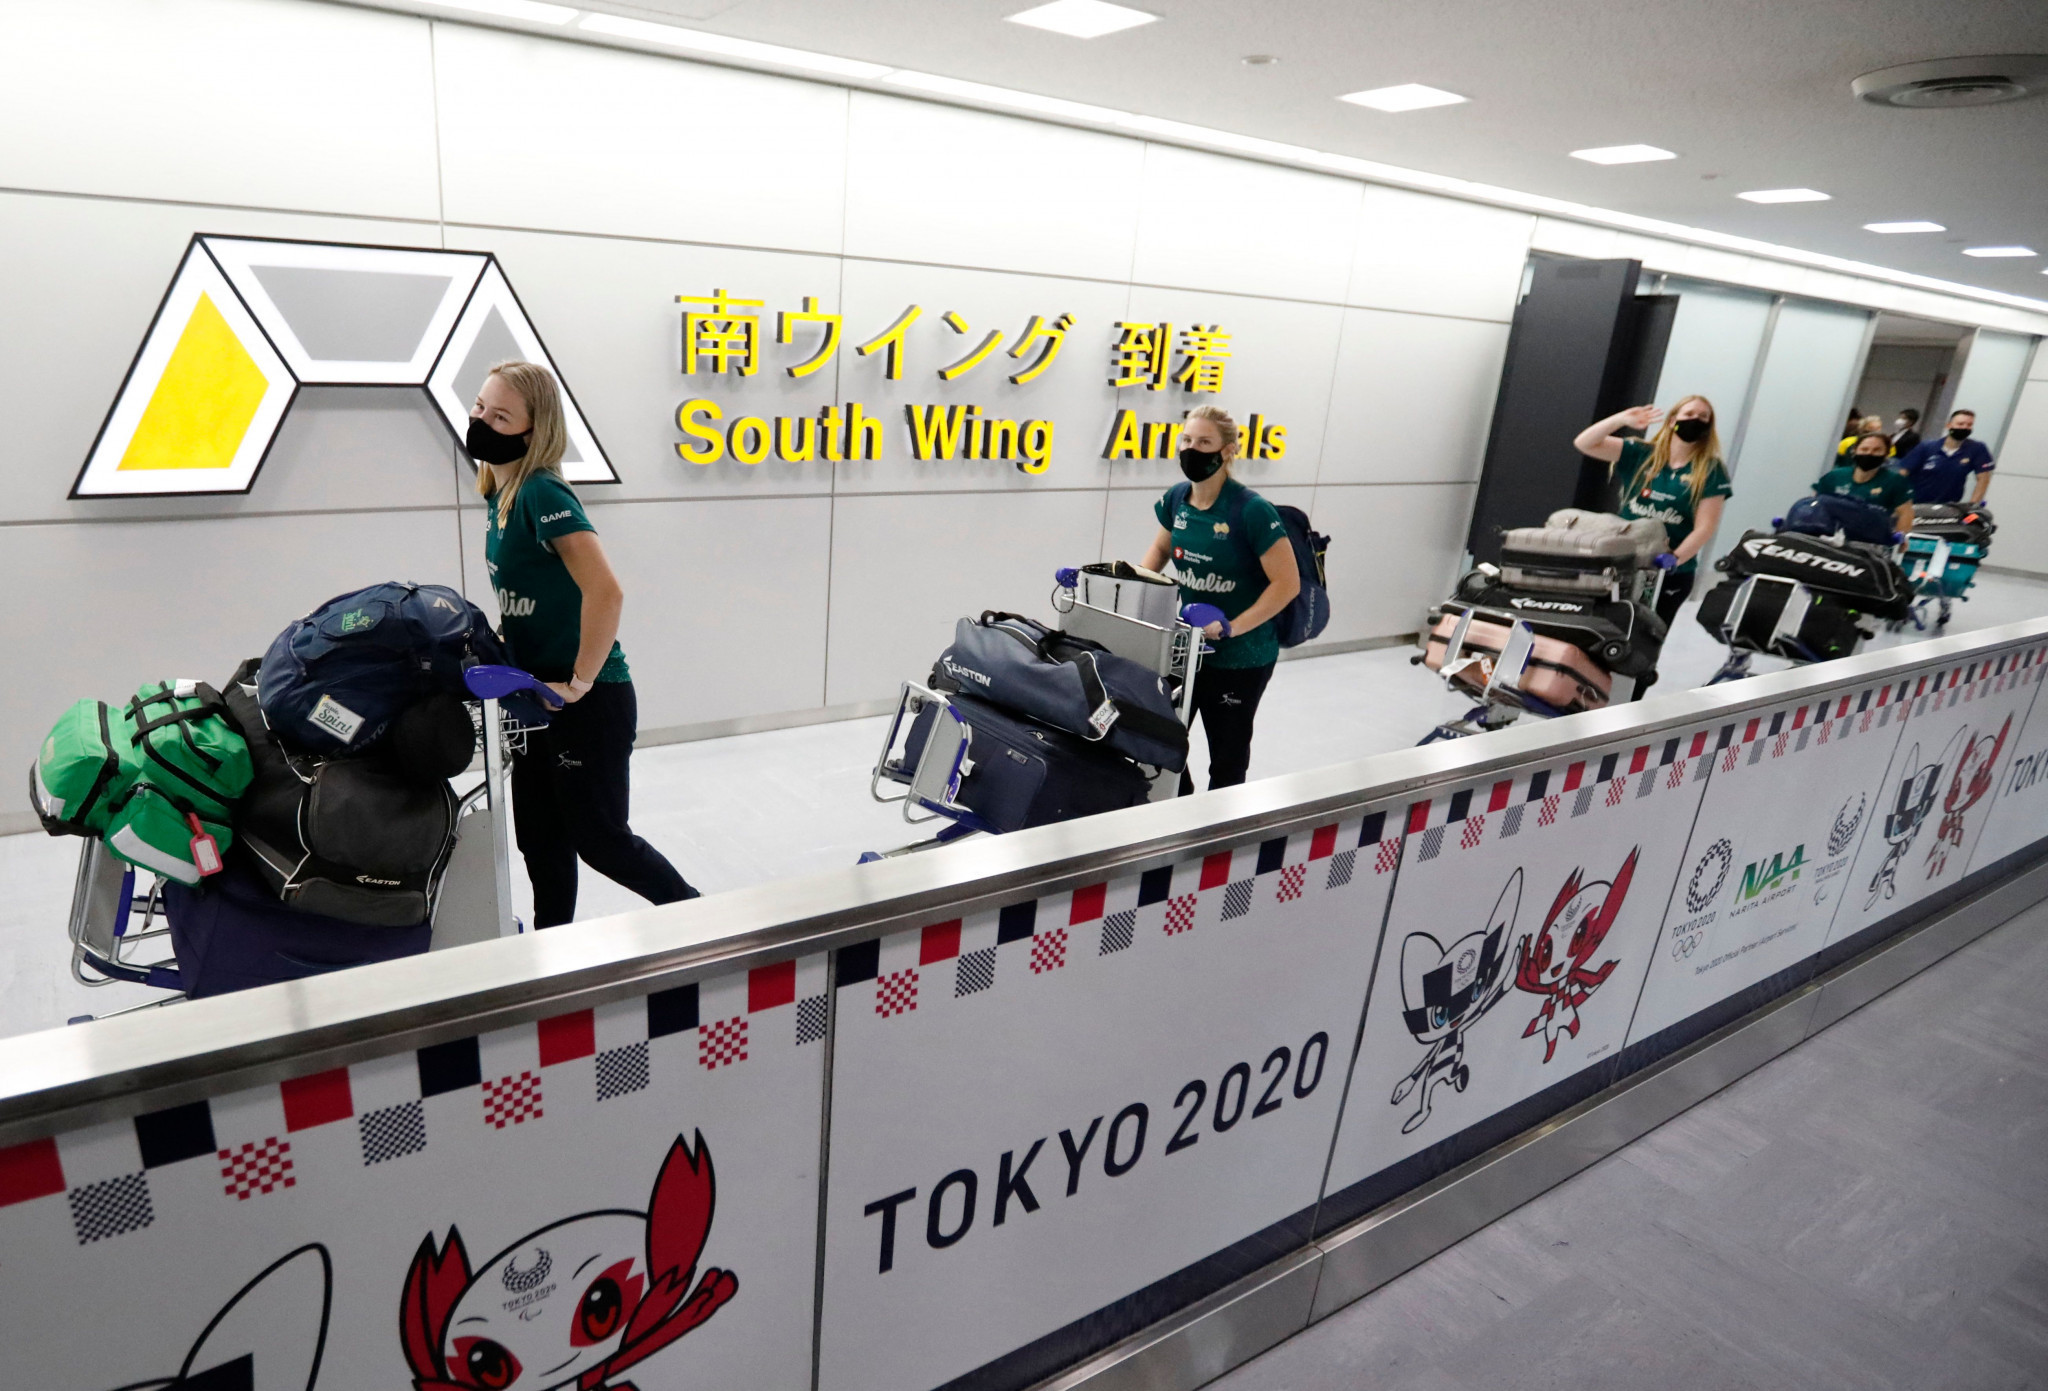 Tens of thousands of athletes, staff and journalists are set to arrive in Tokyo, increasing fears from the Japanese public and medical experts over potential COVID-19 outbreaks ©Getty Images